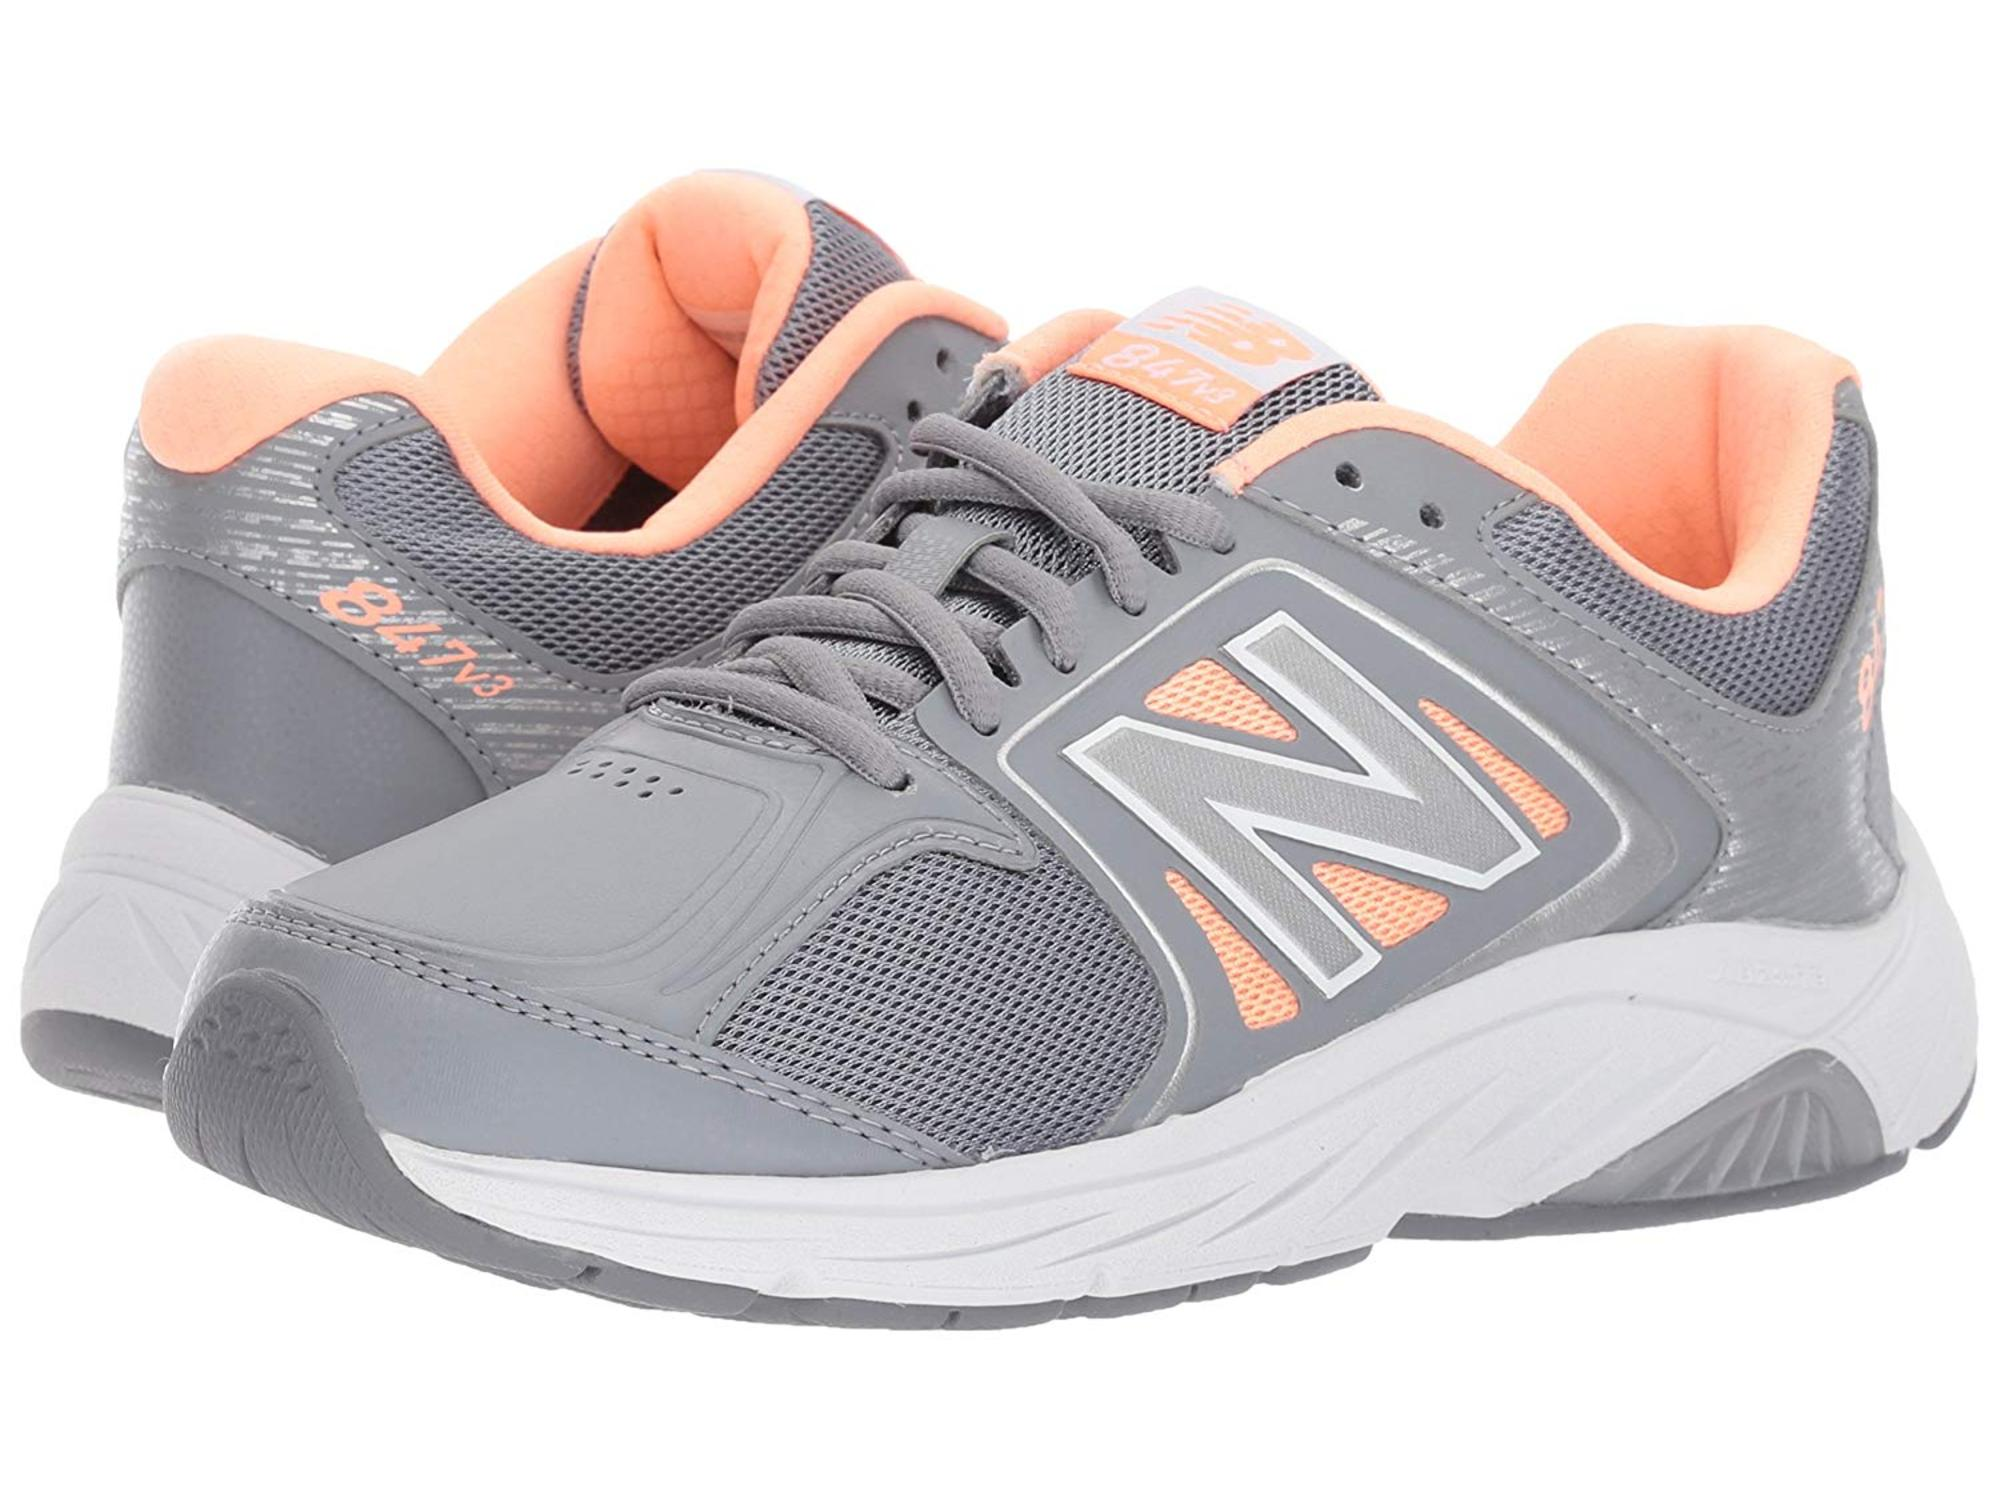 78c7596b93 New Balance Women's 847v3 Walking Shoe